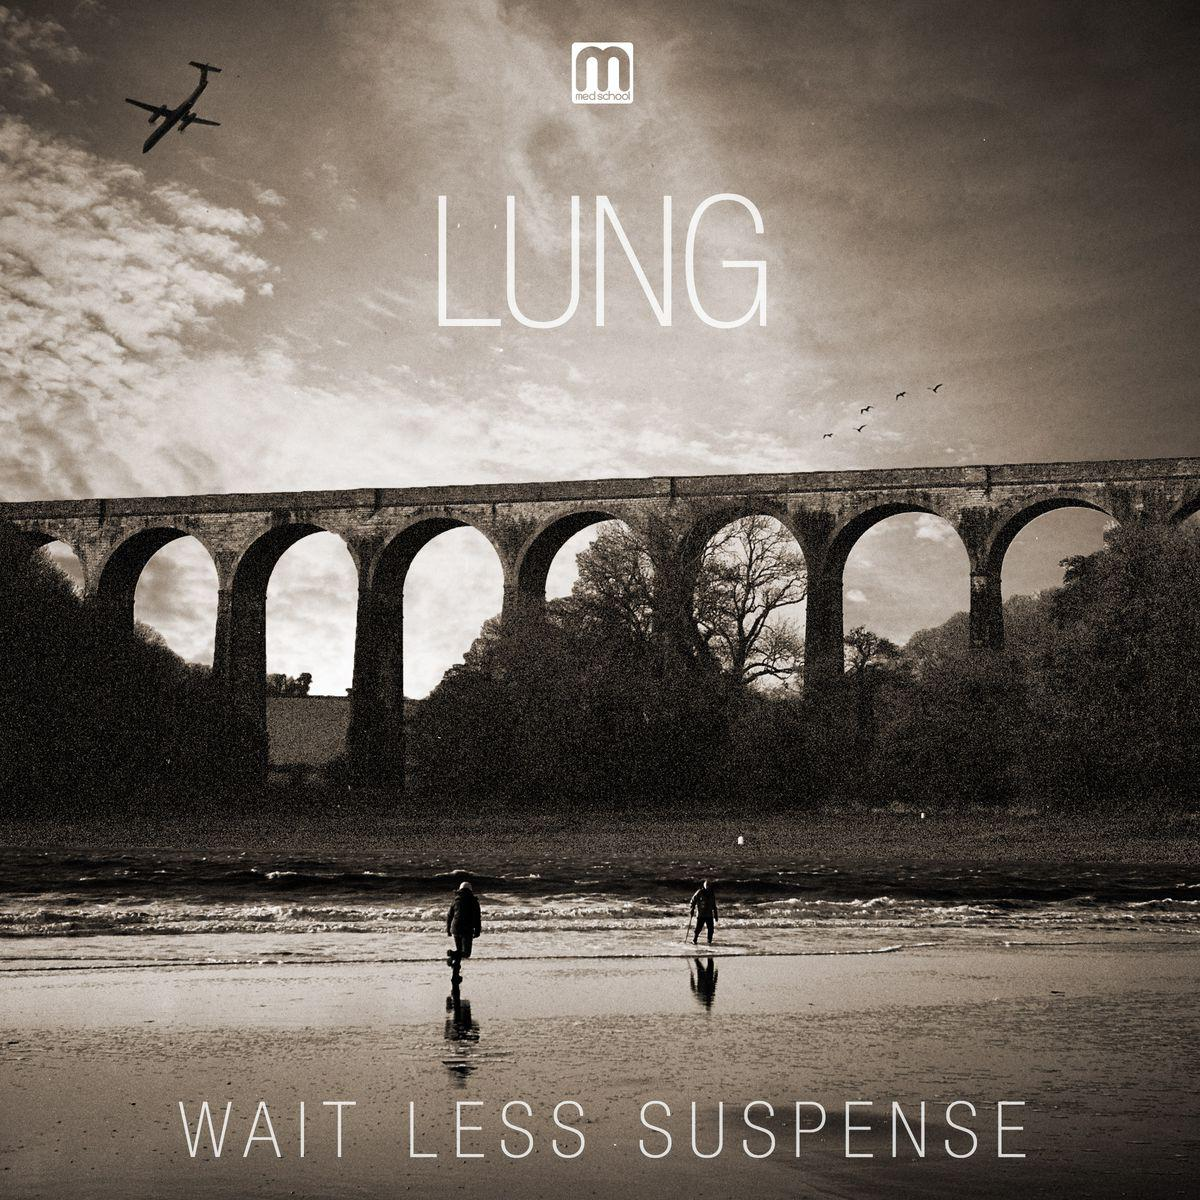 Lung - Wait Less Suspense (2013) [MULTI]